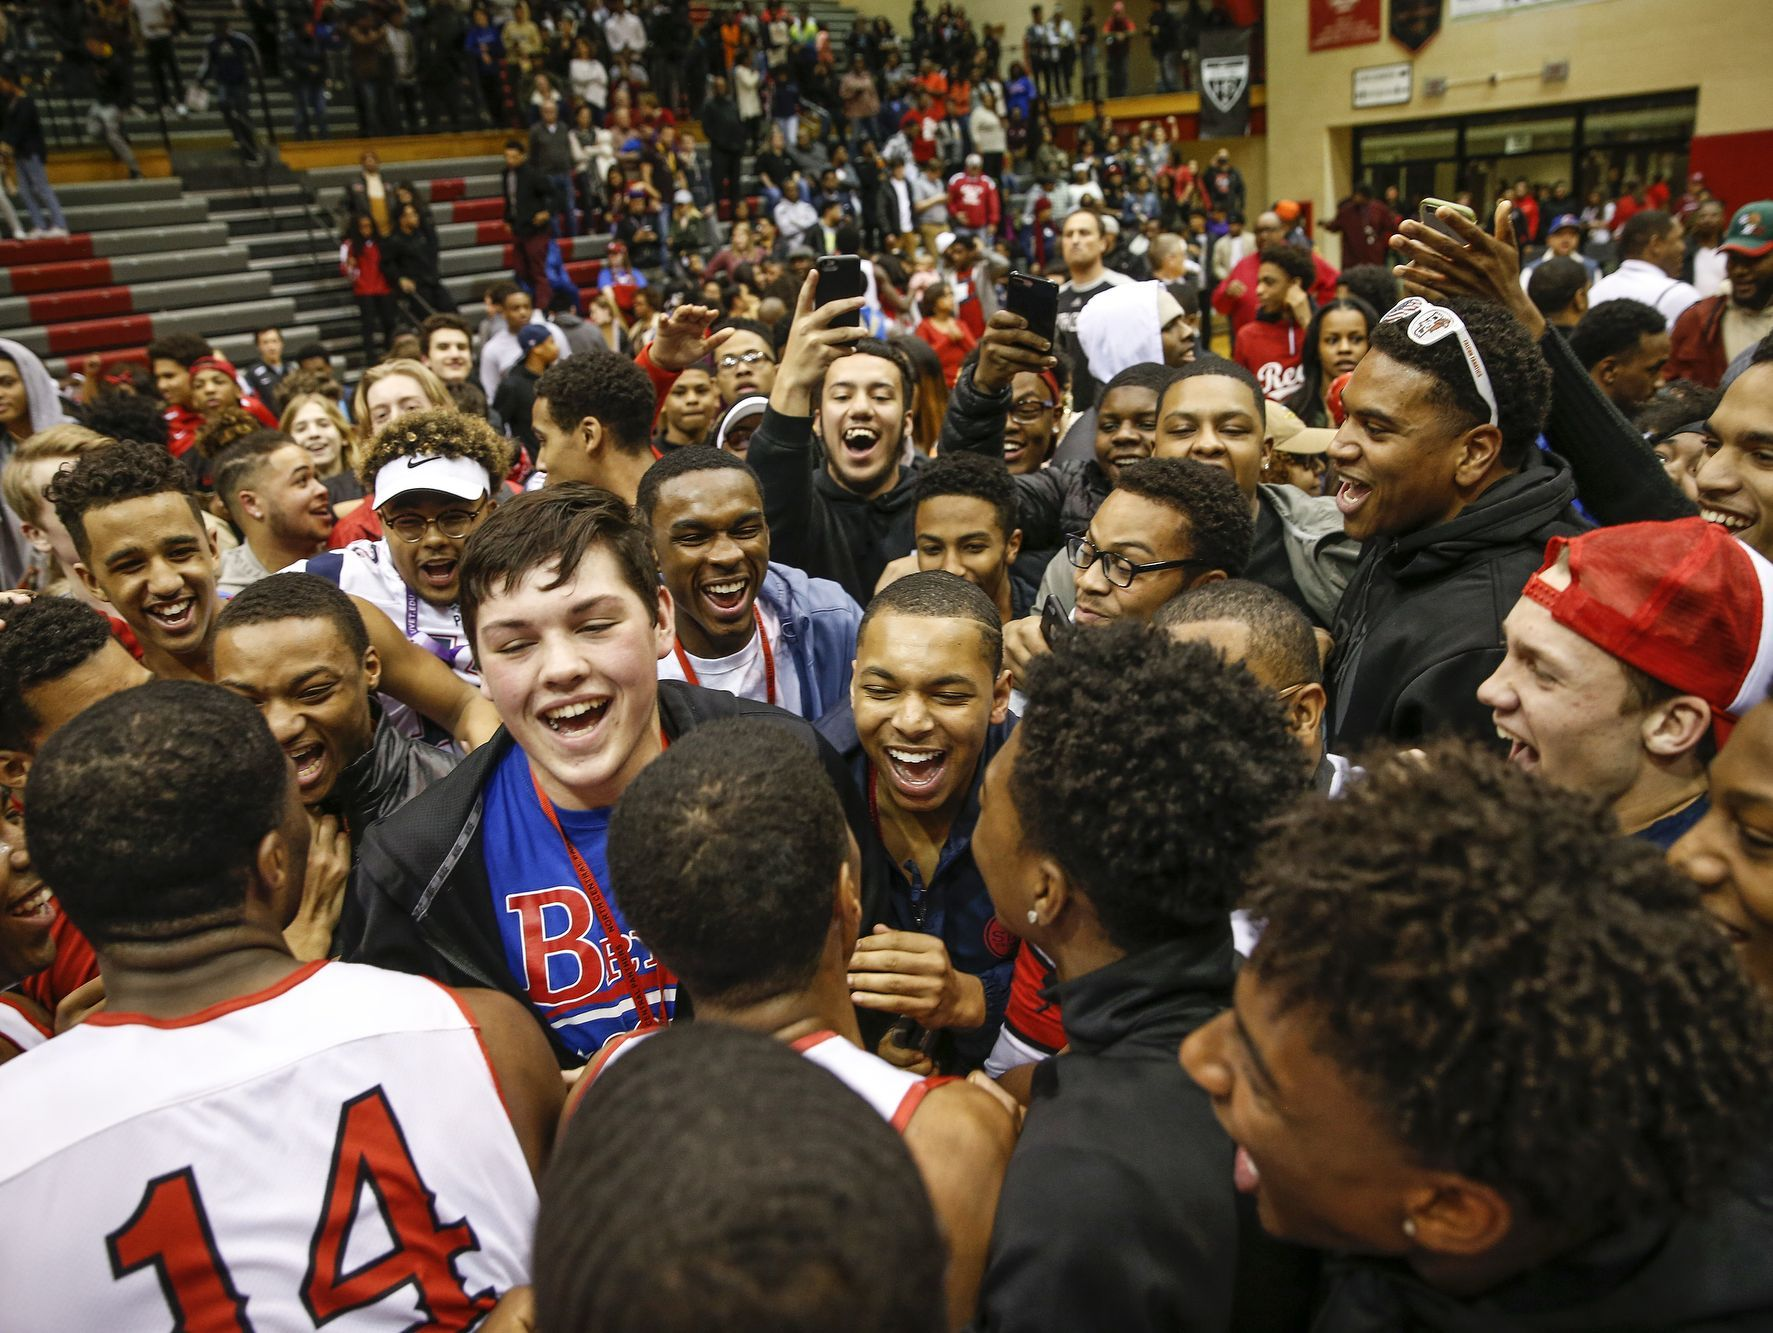 North Central Panthers players and fans celebrate after the Panthers' win over the Lawrence North Wildcats in their IHSAA 4A sectional final basketball game at North Central High School on Saturday, March 4, 2017.